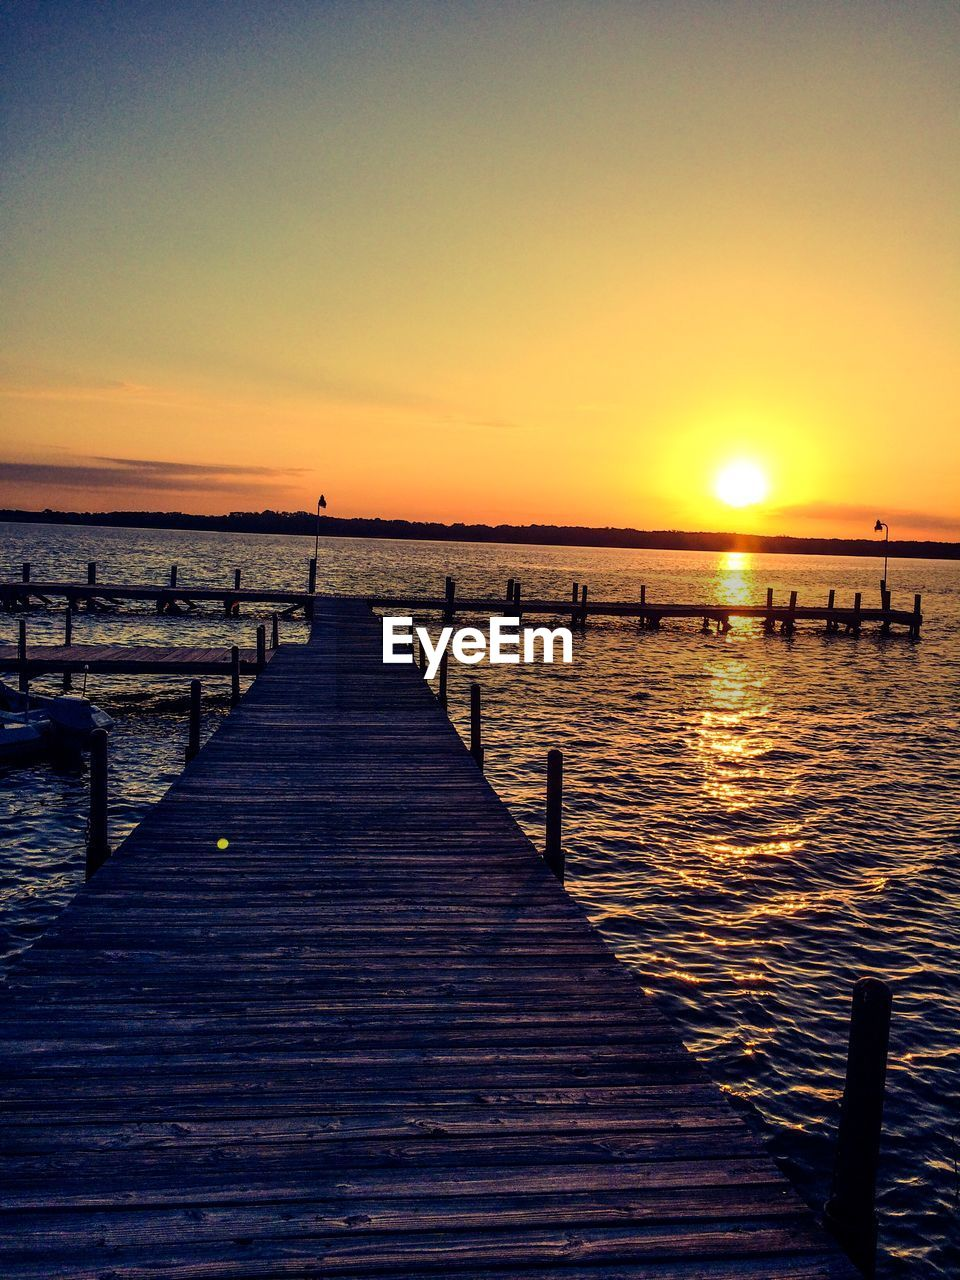 sunset, sun, pier, beauty in nature, jetty, tranquility, tranquil scene, scenics, nature, water, sea, sunlight, sky, outdoors, wood - material, clear sky, wood paneling, no people